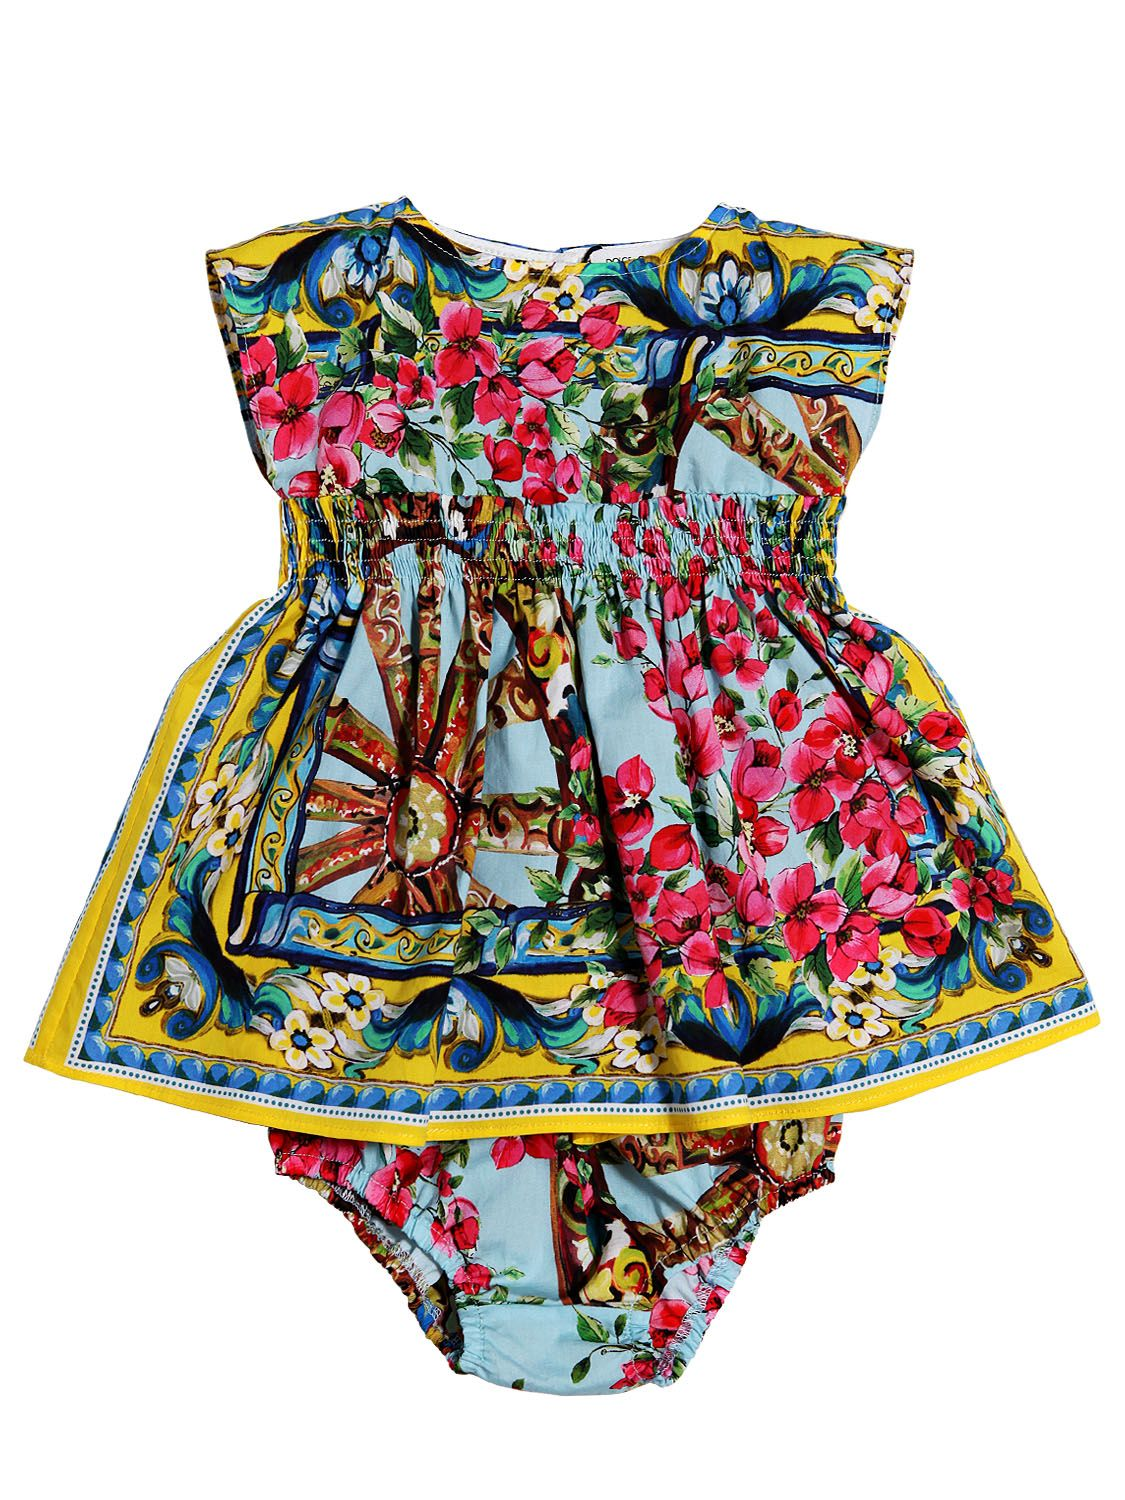 DOLCE & GABBANA - COTTON POPLIN DRESS SET - LUISAVIAROMA - LUXURY SHOPPING WORLDWIDE SHIPPING - FLORENCE $440